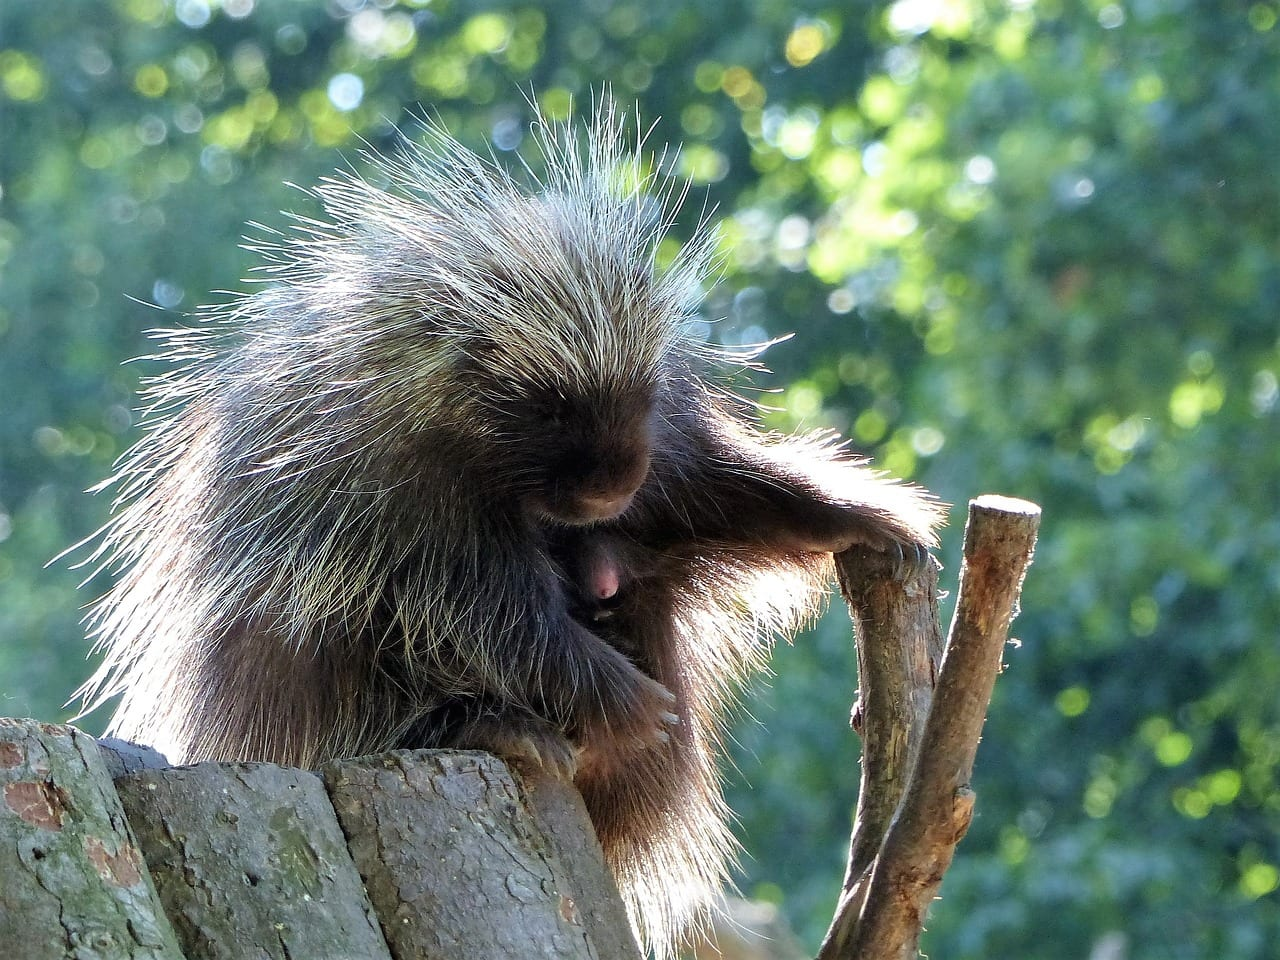 https://pixabay.com/en/porcupines-zoo-sleep-enjoy-relax-2439832/